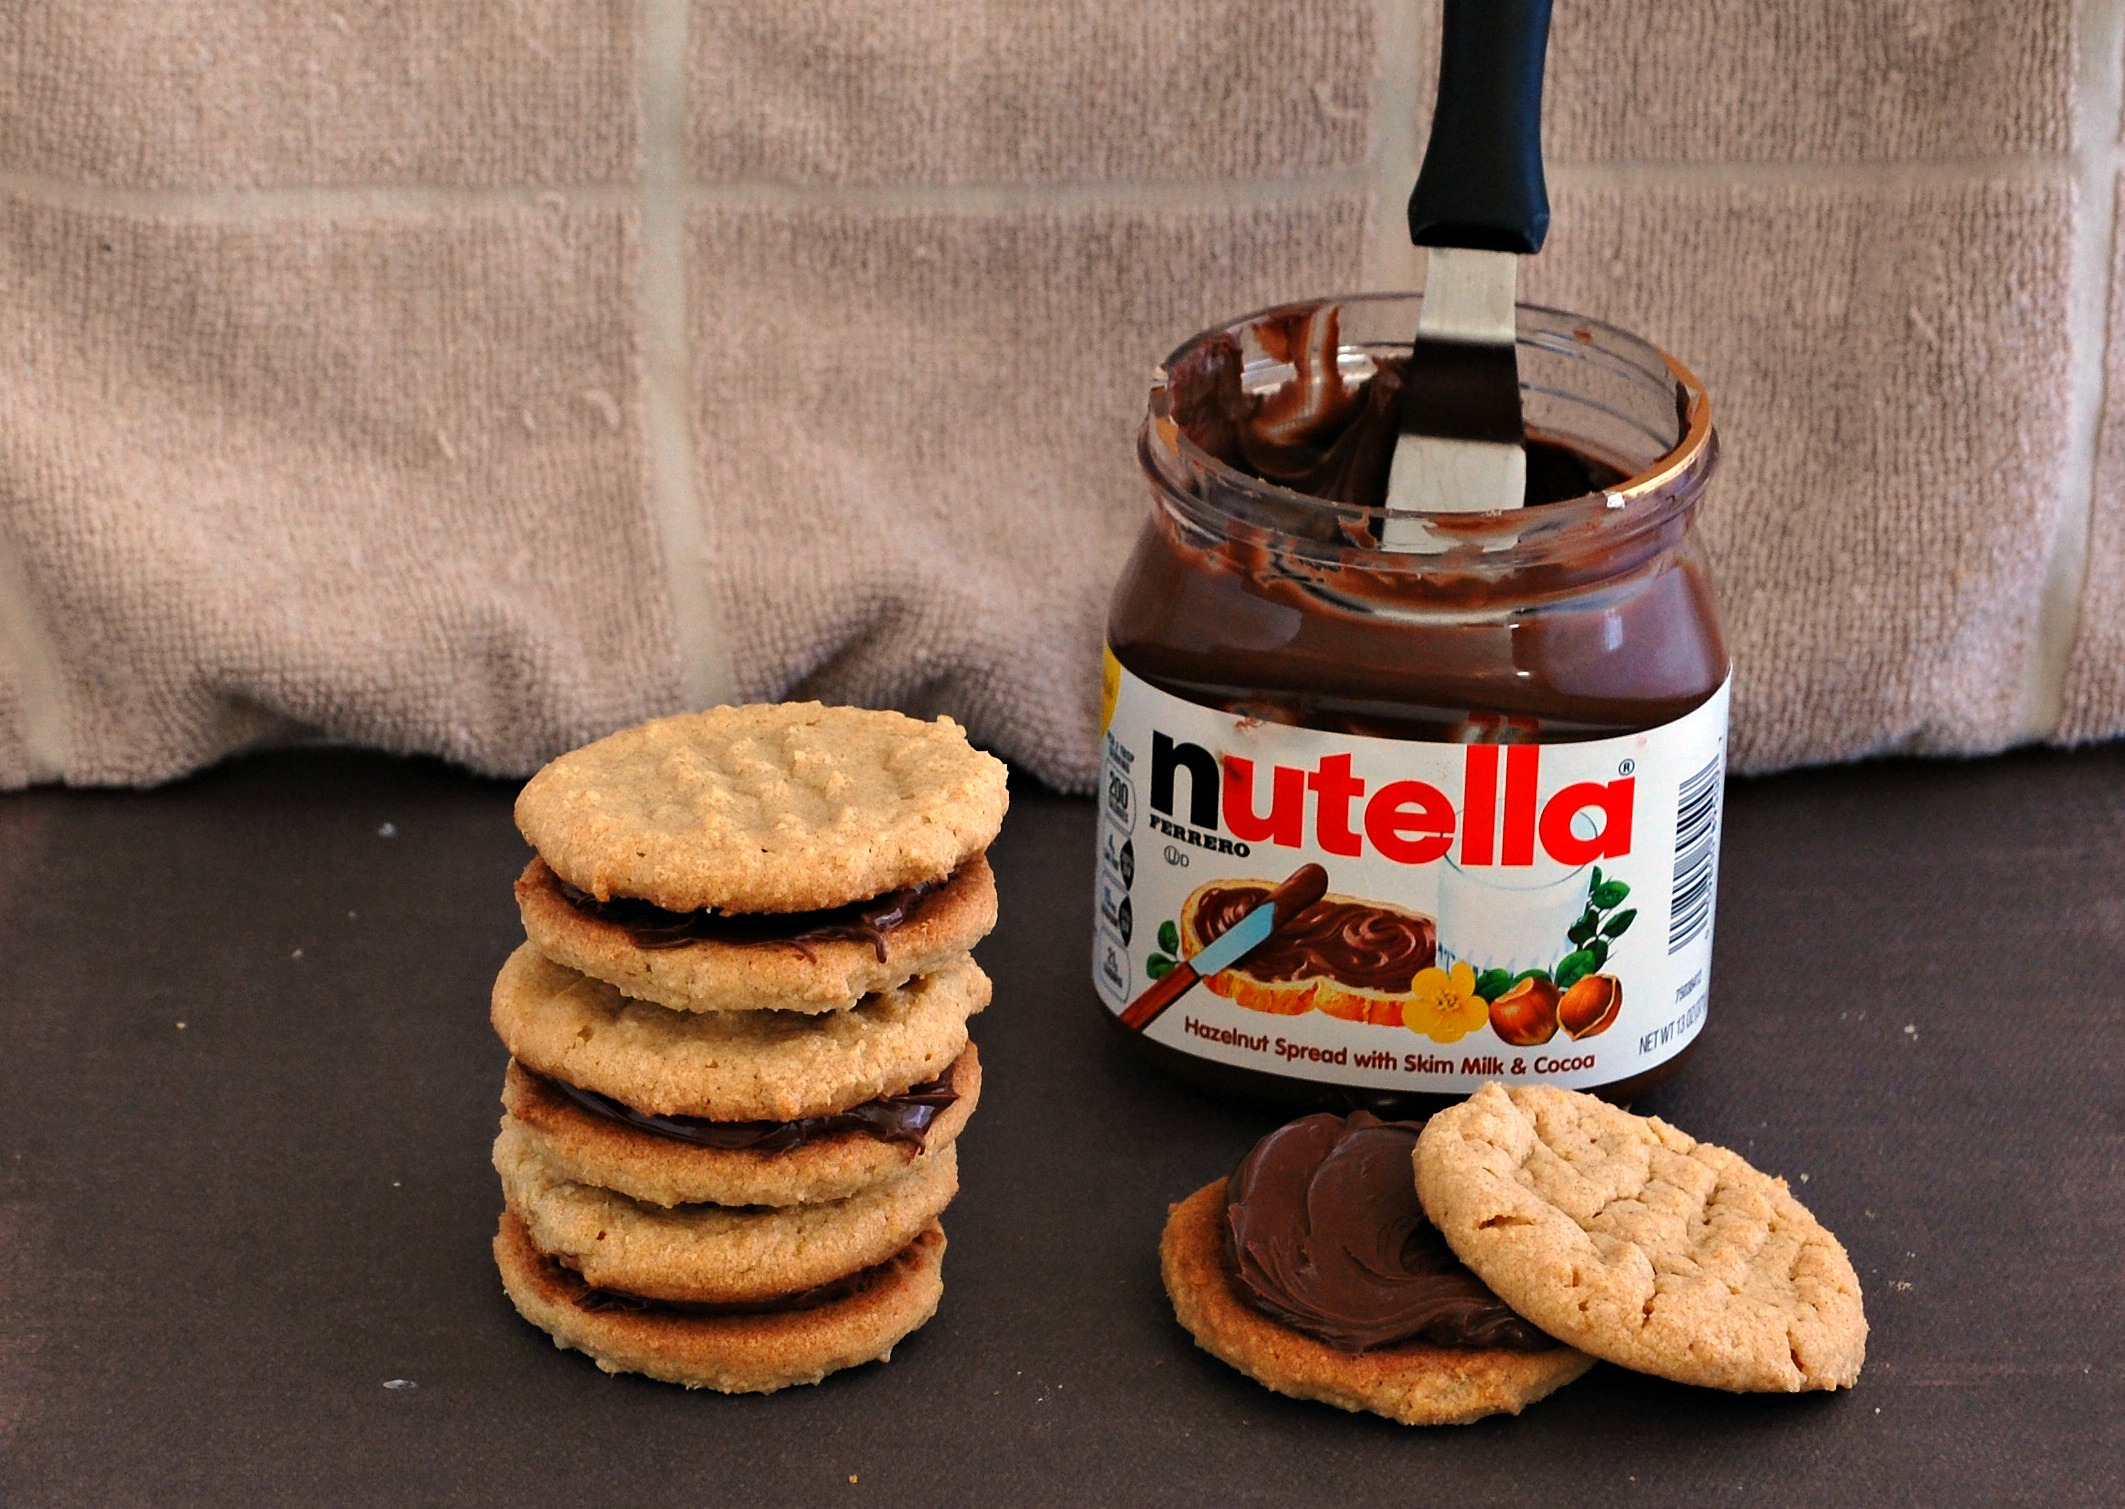 Chocolate Day Hd Wallpaper Peanut Butter Nutella Sandwich Cookies